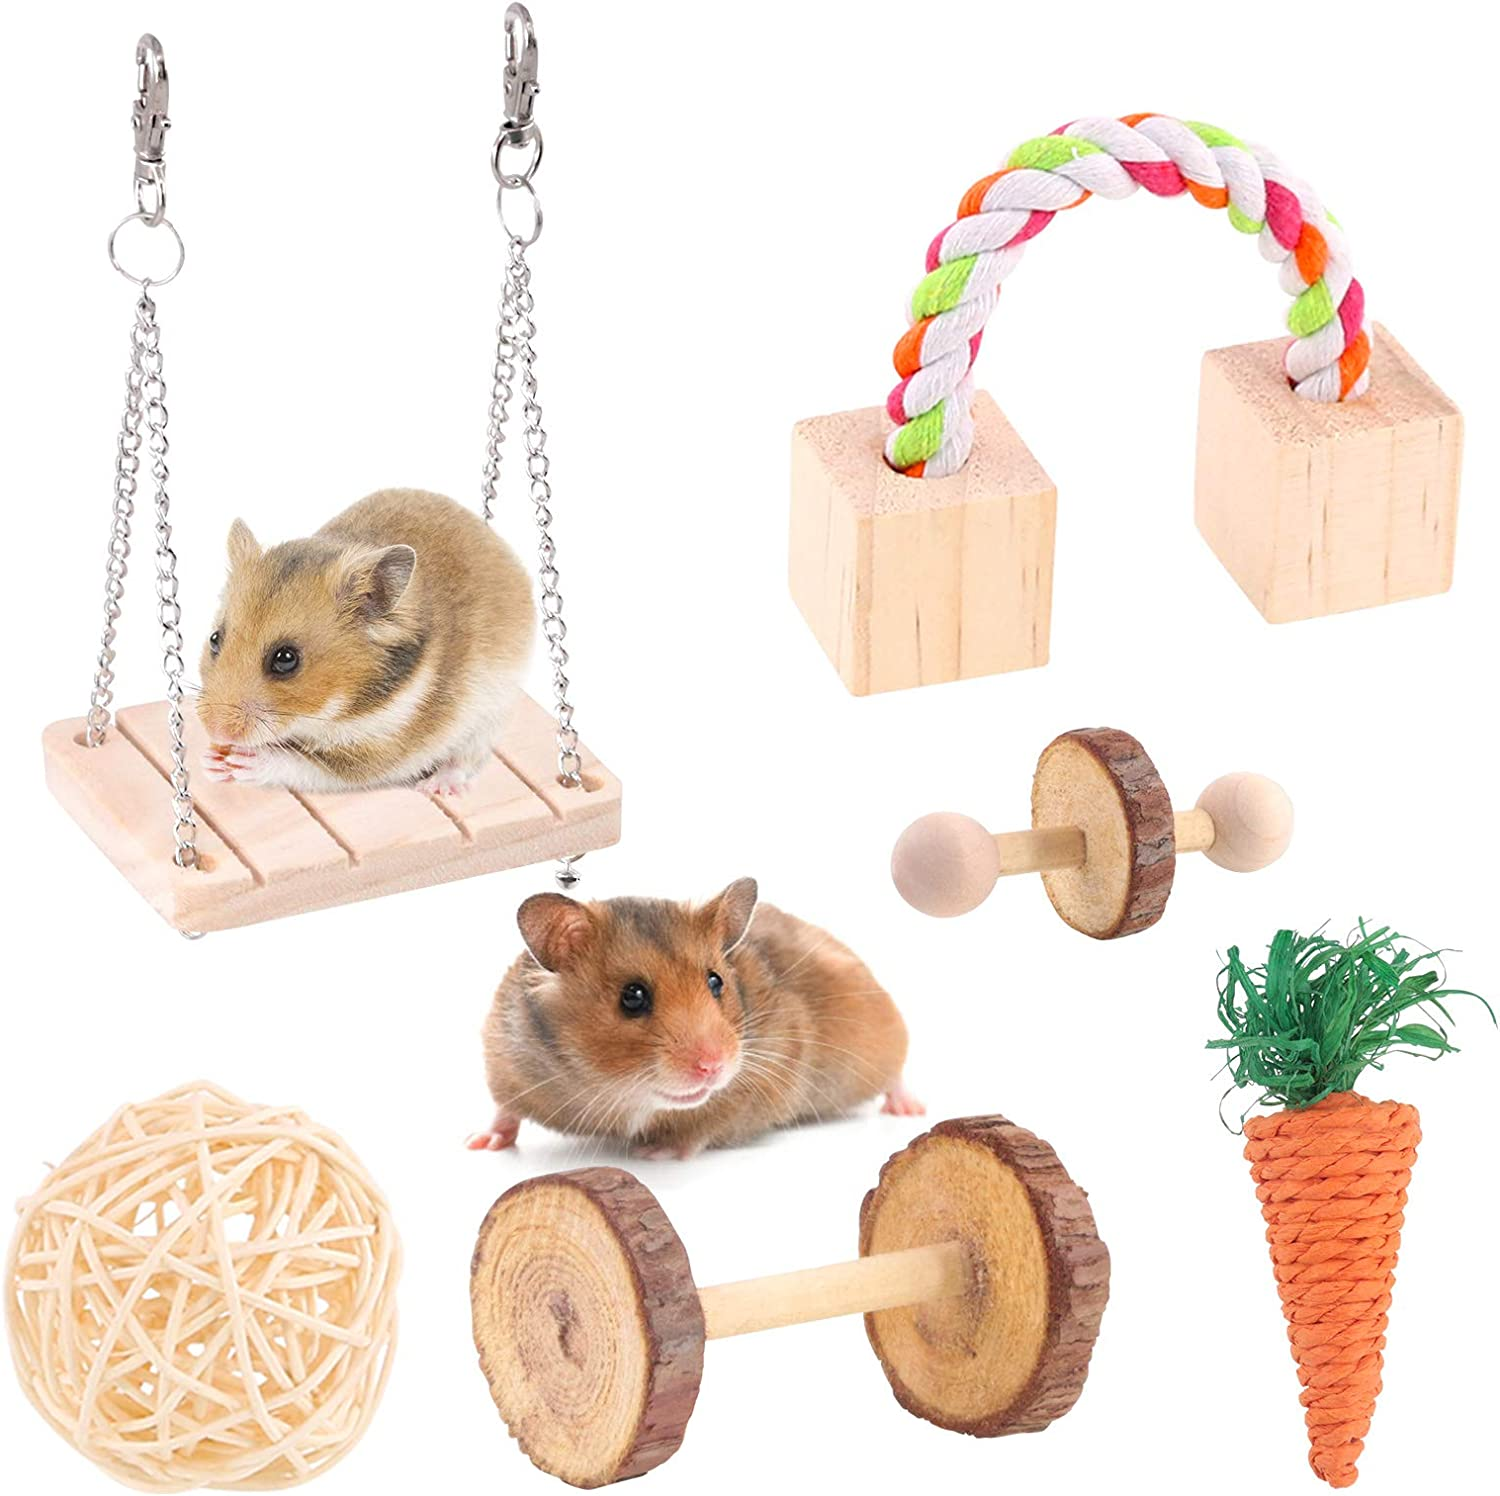 Hamster Chew Toys Wooden Rabbit Molar Toy Hanging Small Animals Chewing Exercise Toy for Rabbit Chinchilla Hamster Guinea Pig